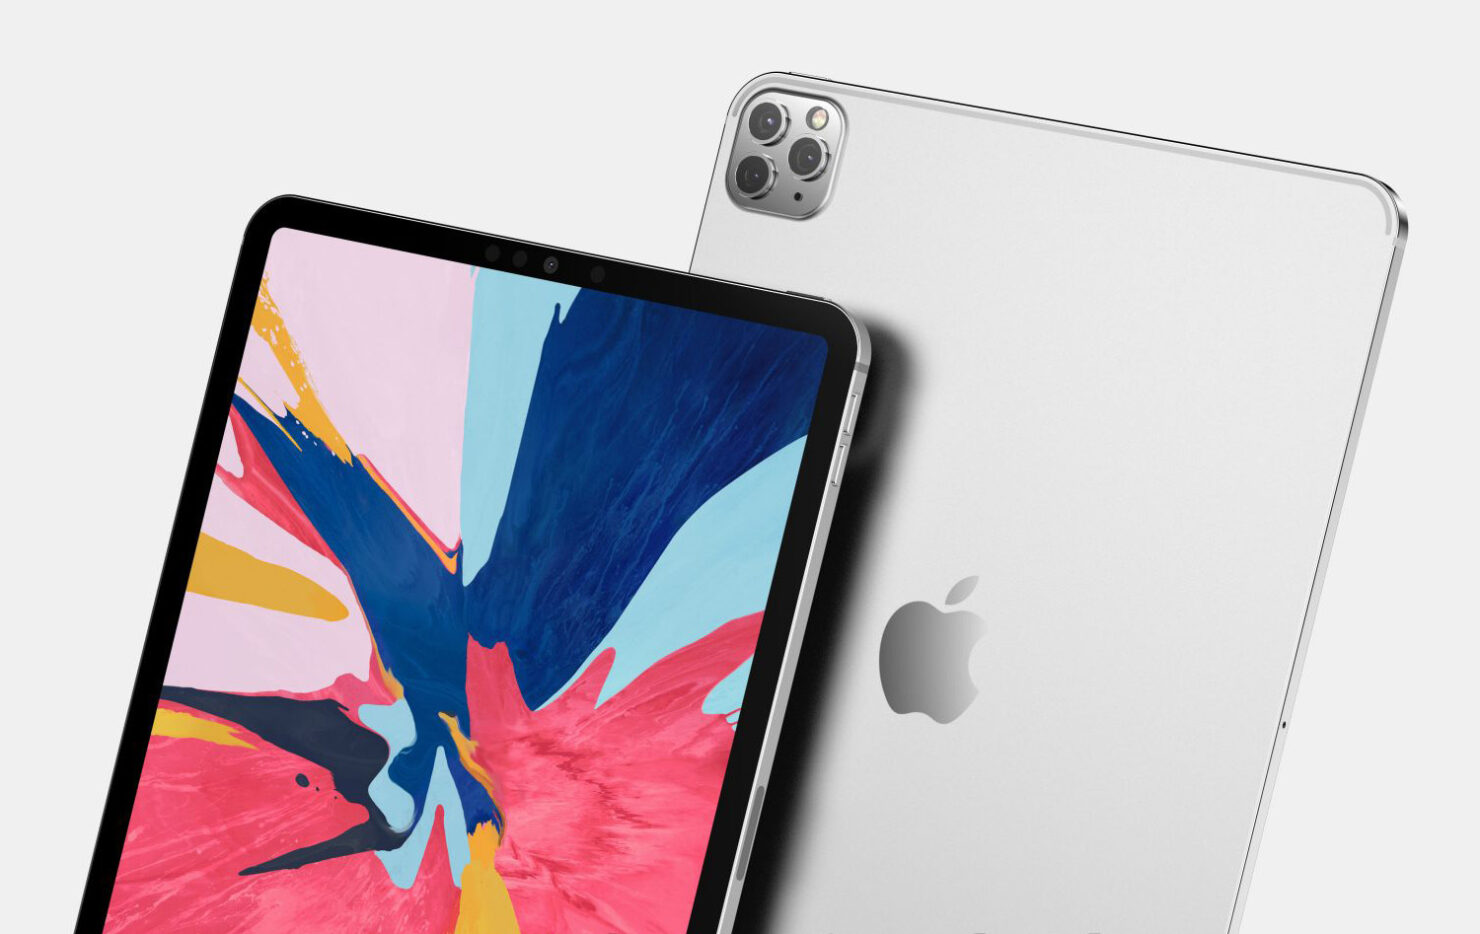 Four New iPad Pro Models With Two Display Sizes Were Spotted in Chinese Manual